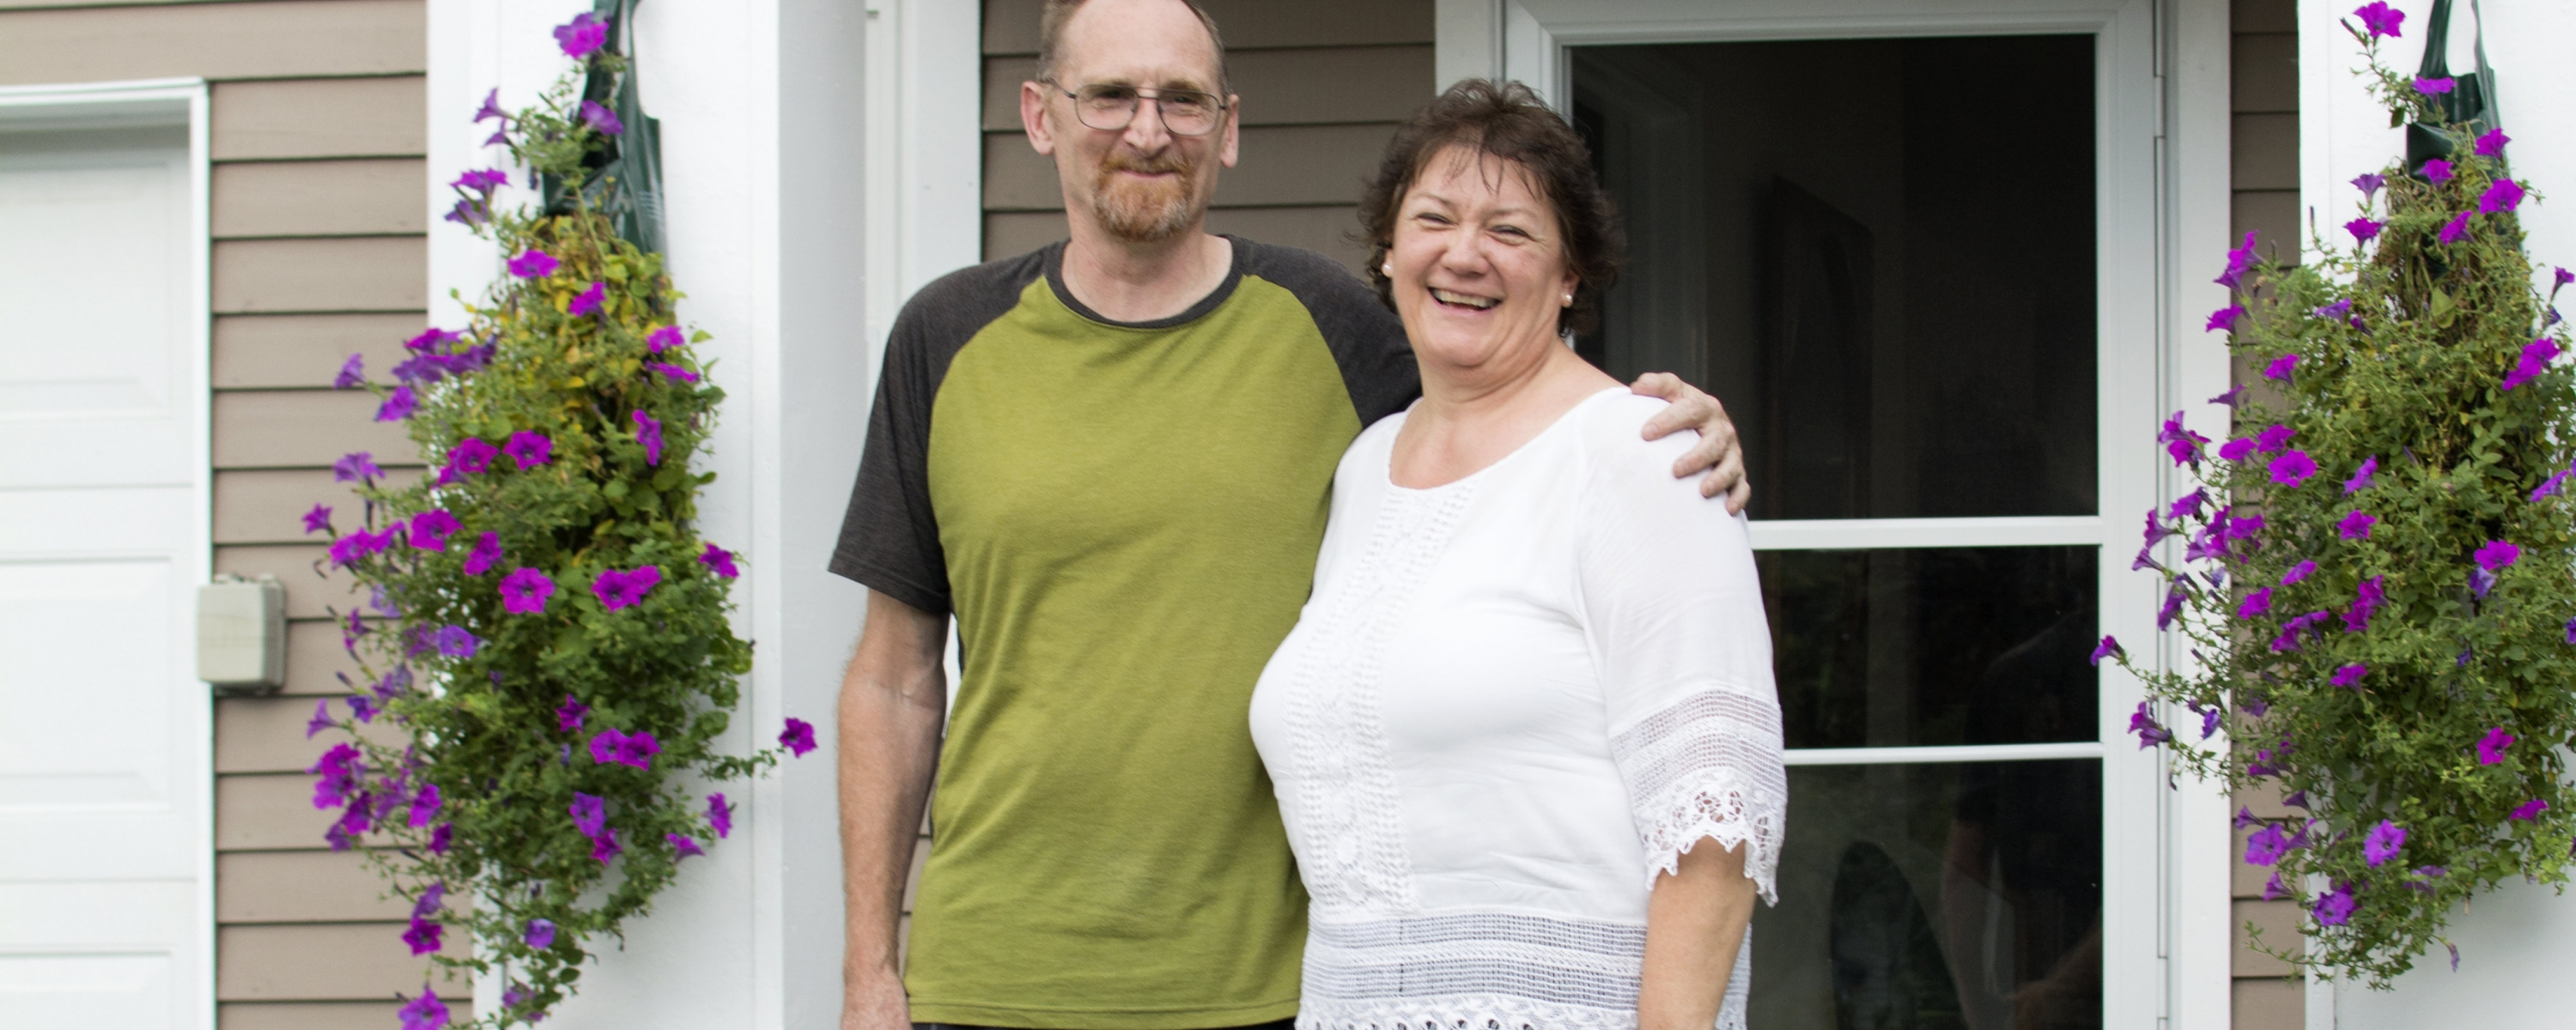 Karleen and Alan were able to buy a condo they had been renting for many years.